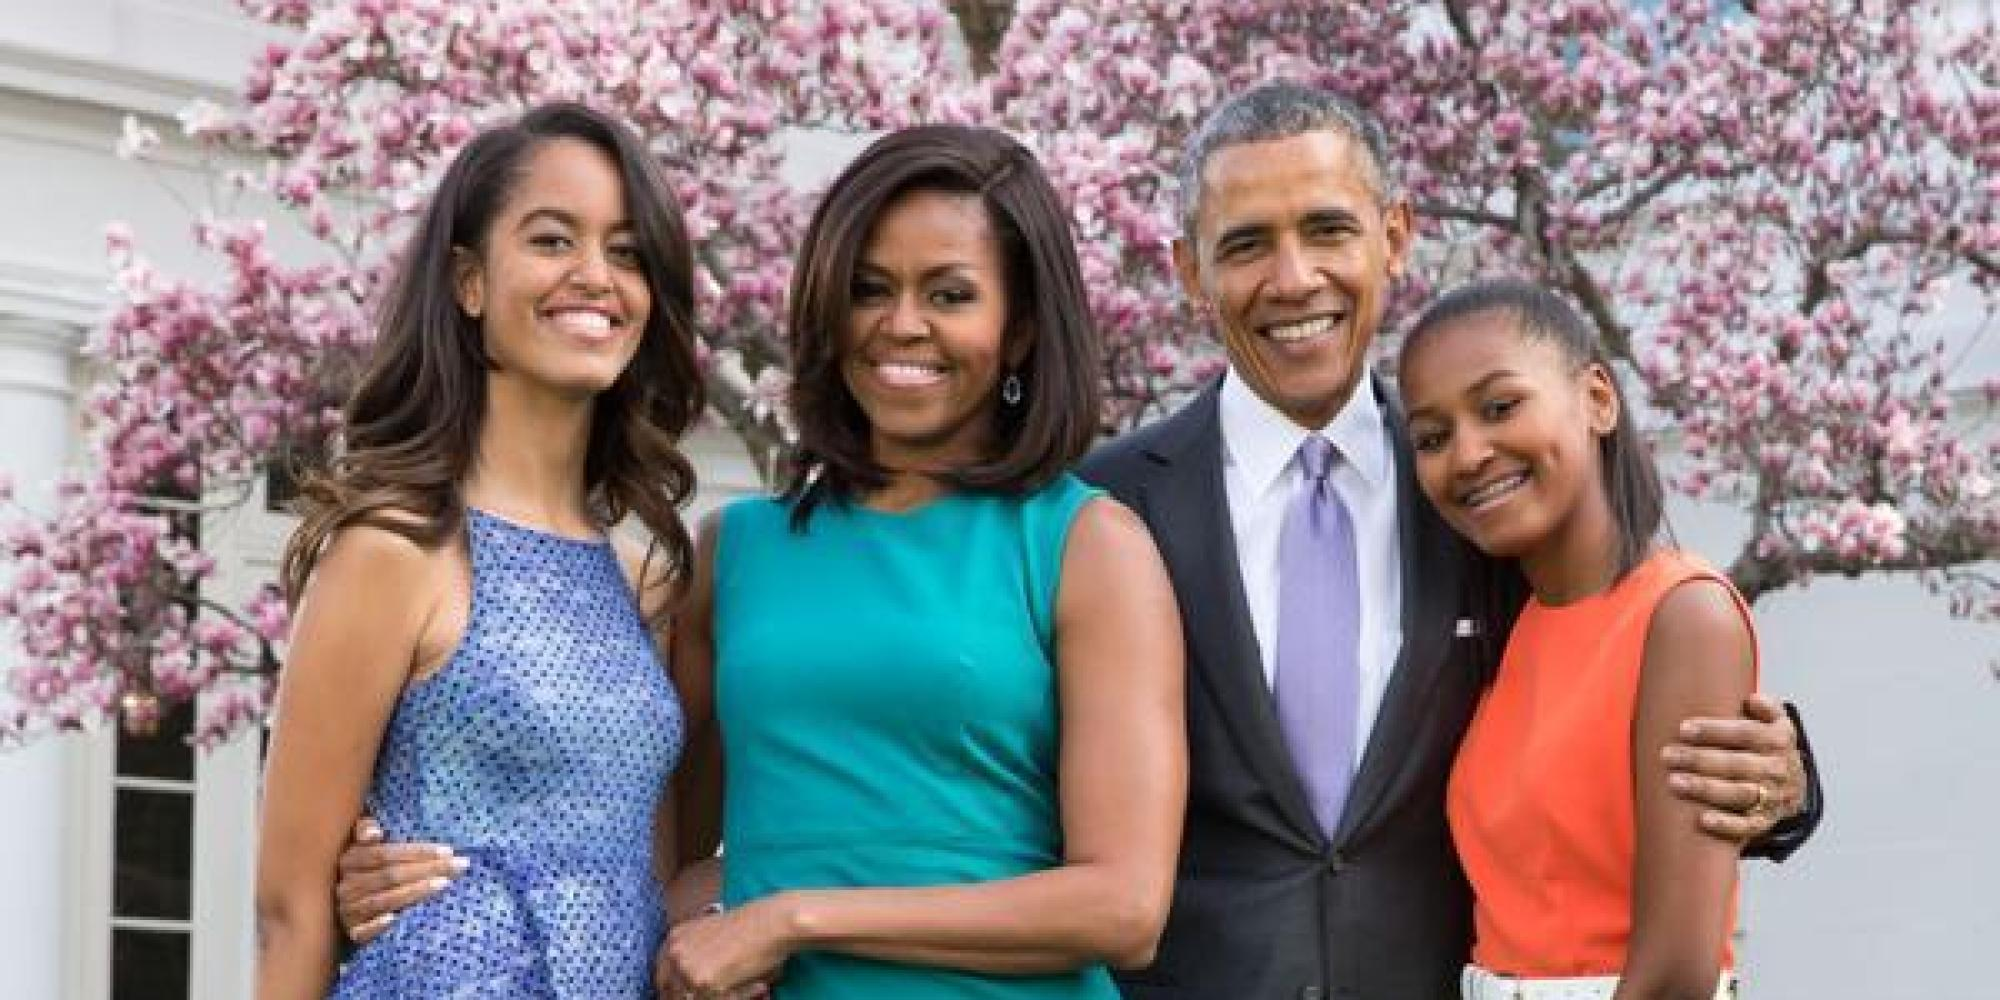 Michelle Obama And First Family Looked Exceptionally